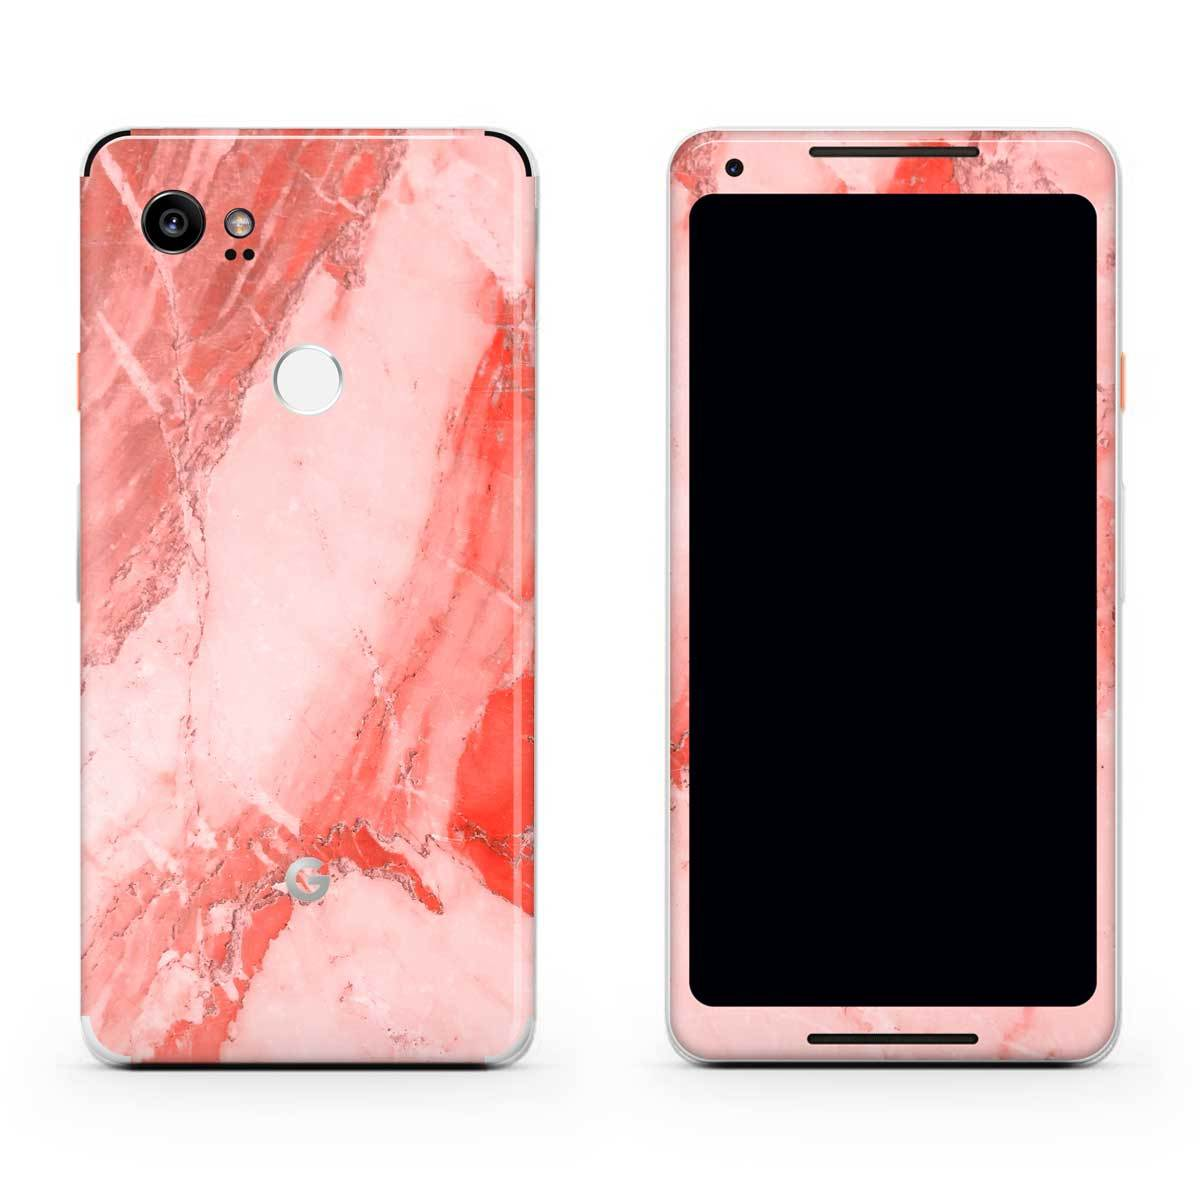 Coral Marble Pixel 2 Skin + Case